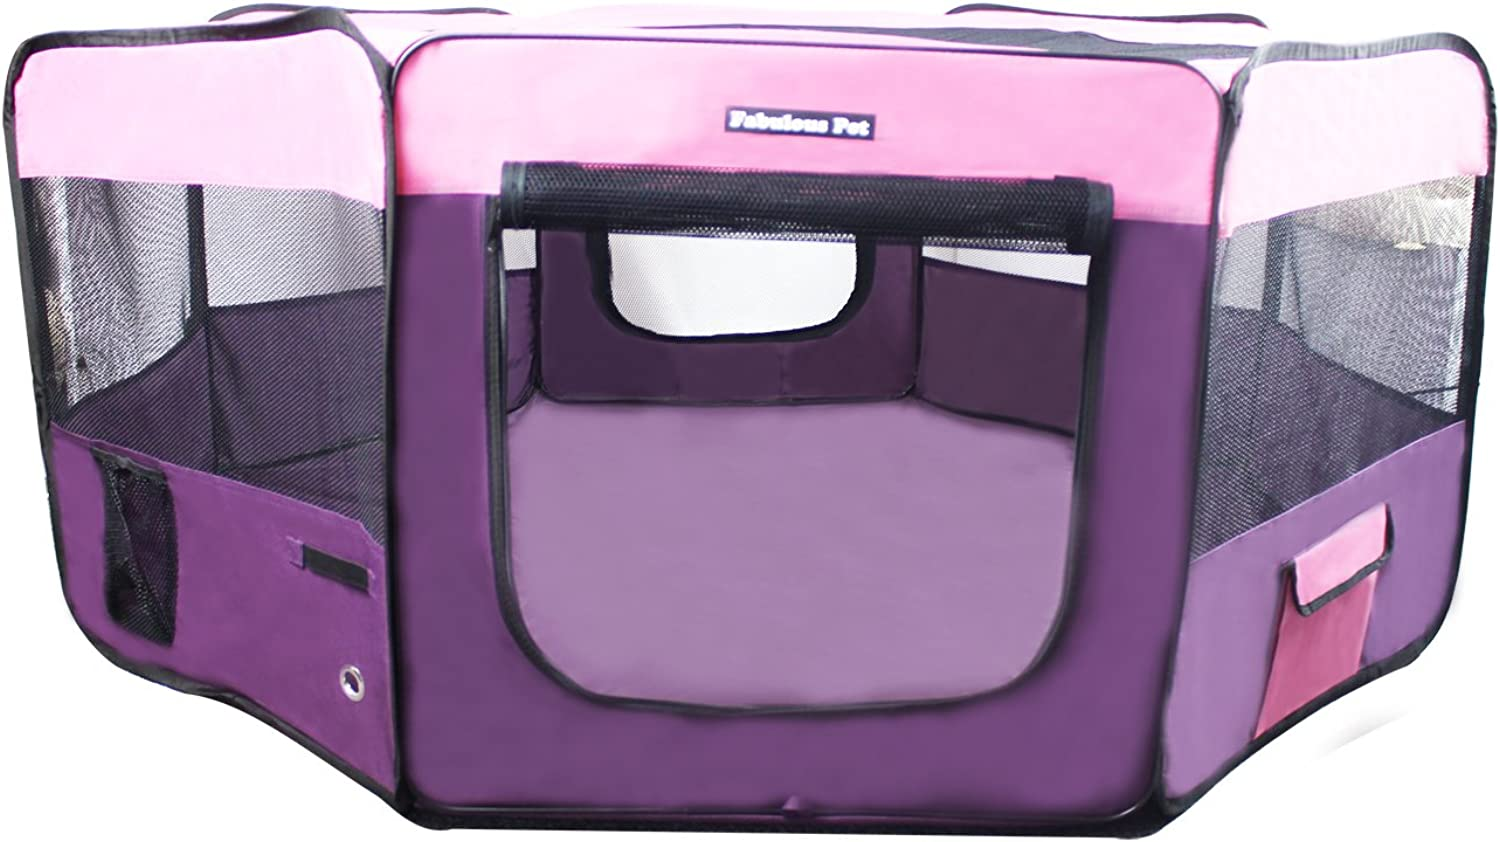 Fabulous Pet Water Resistant Portable Doggie, Dog, Puppy, Cat, Kitten Play Pen(Medium Small)